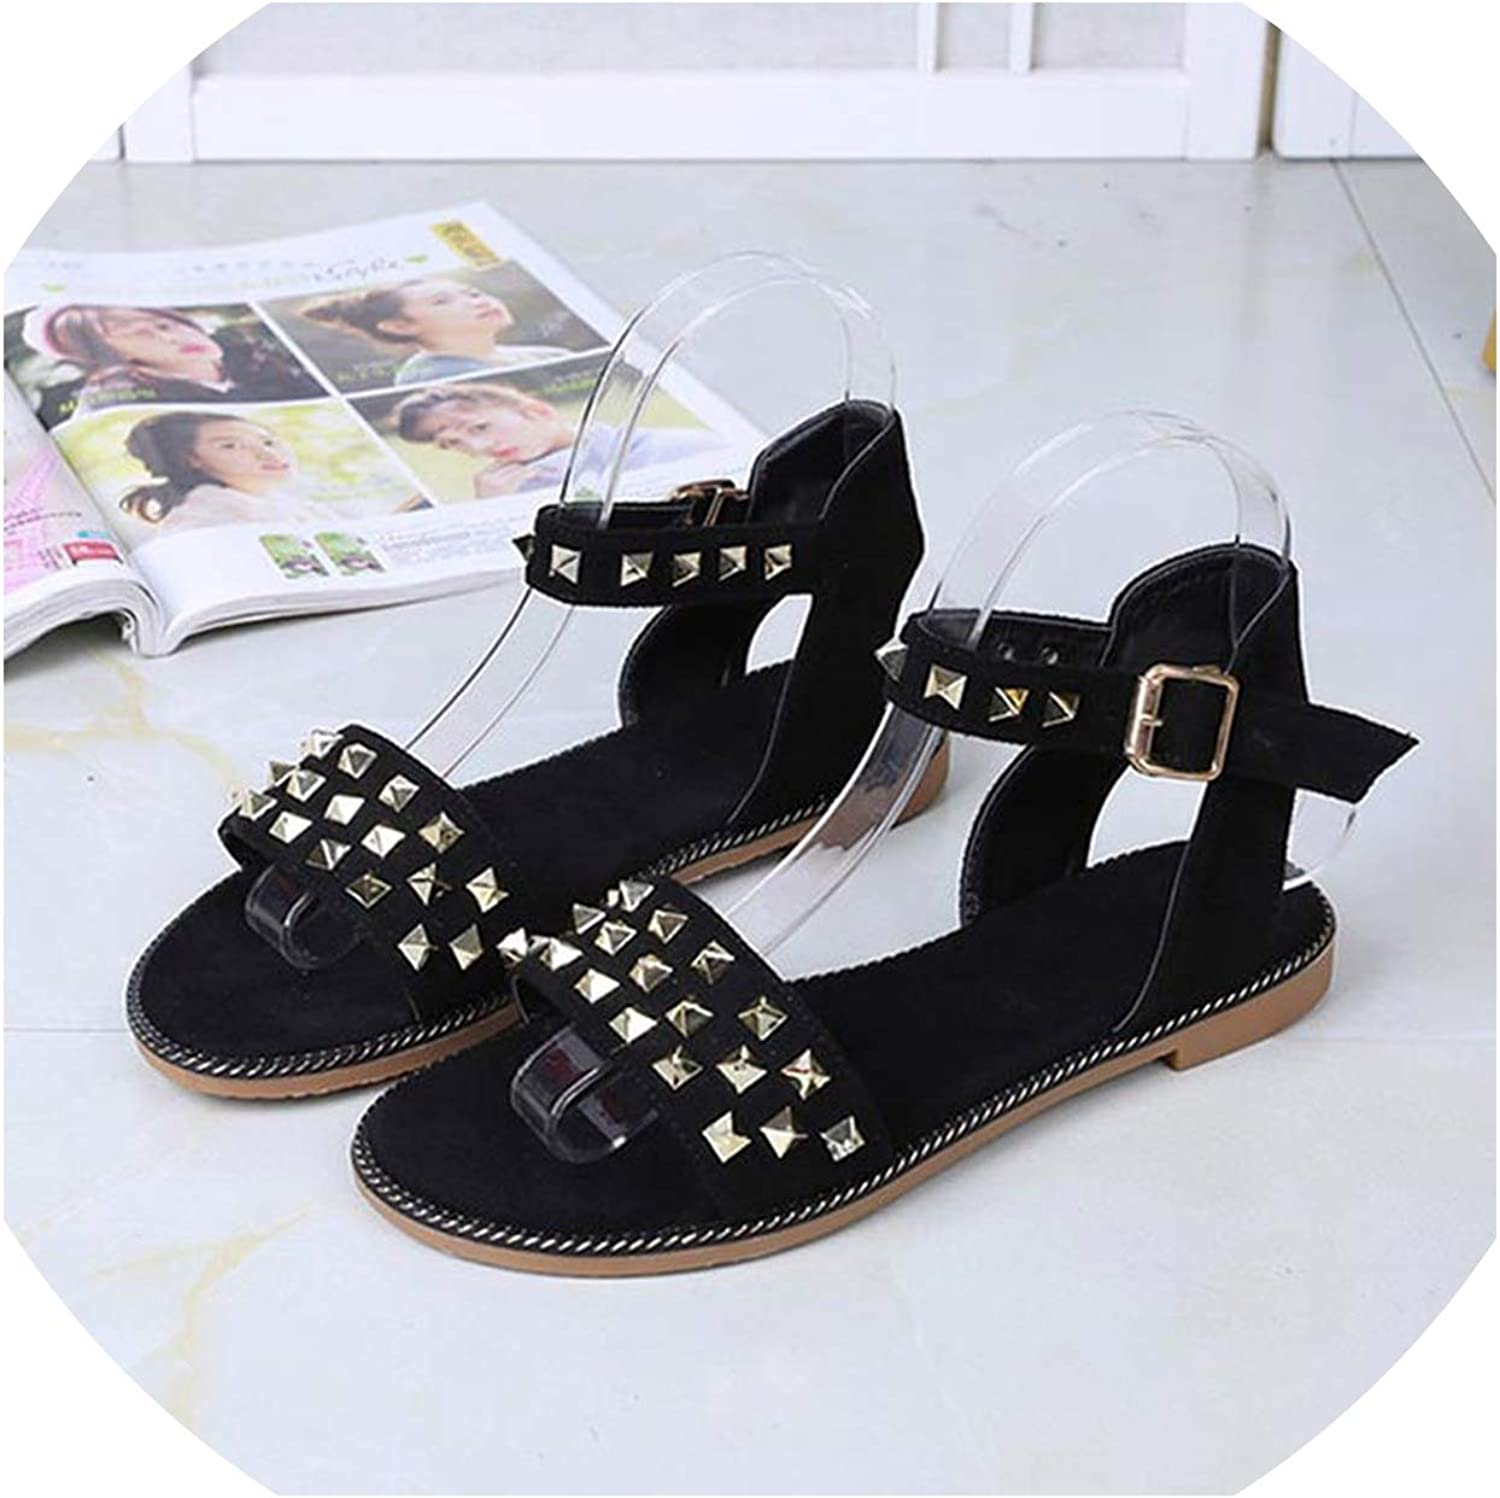 Merry-Heart Sandals Womens Solid Comfort Beach Flats shoes for Woman,